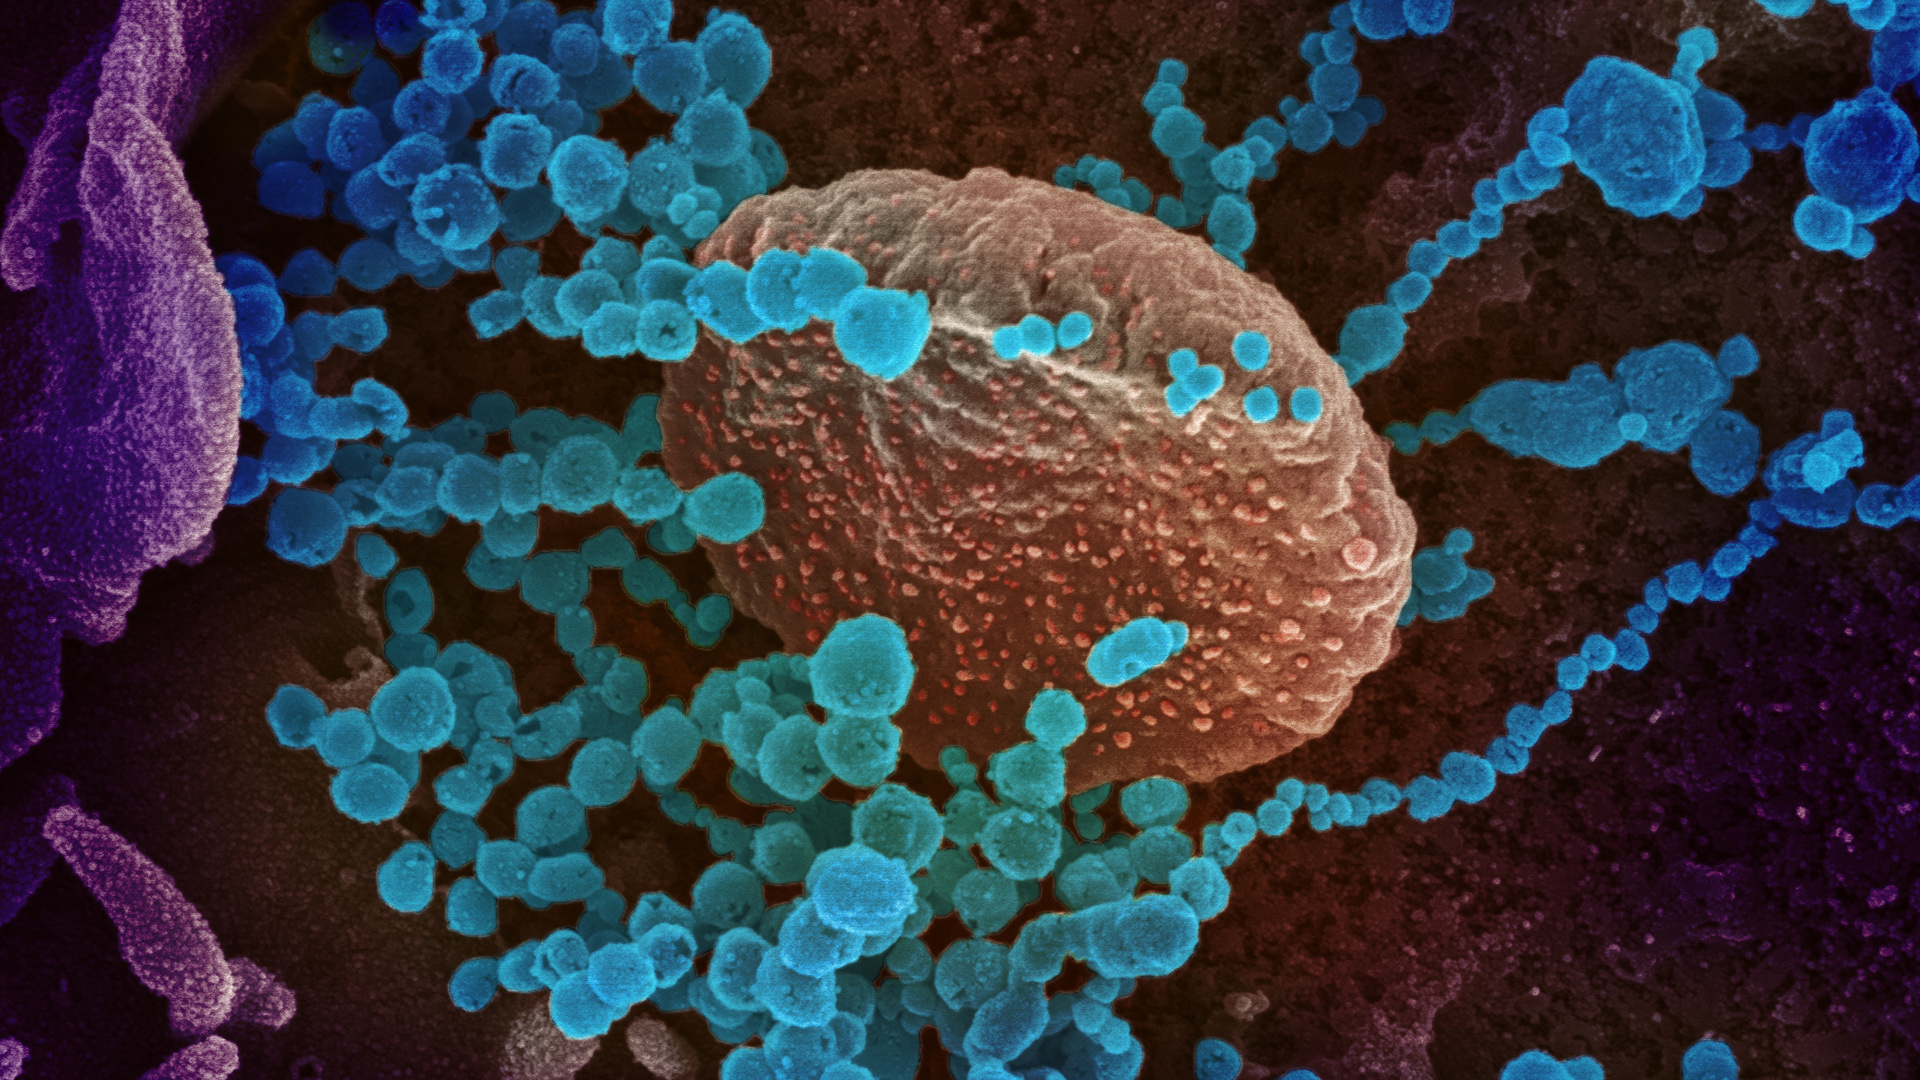 This scanning electron microscope image shows coronavirus emerging from the surface of cells cultured in a lab. (Credit: National Institute of Allergy and Infectious Diseases)